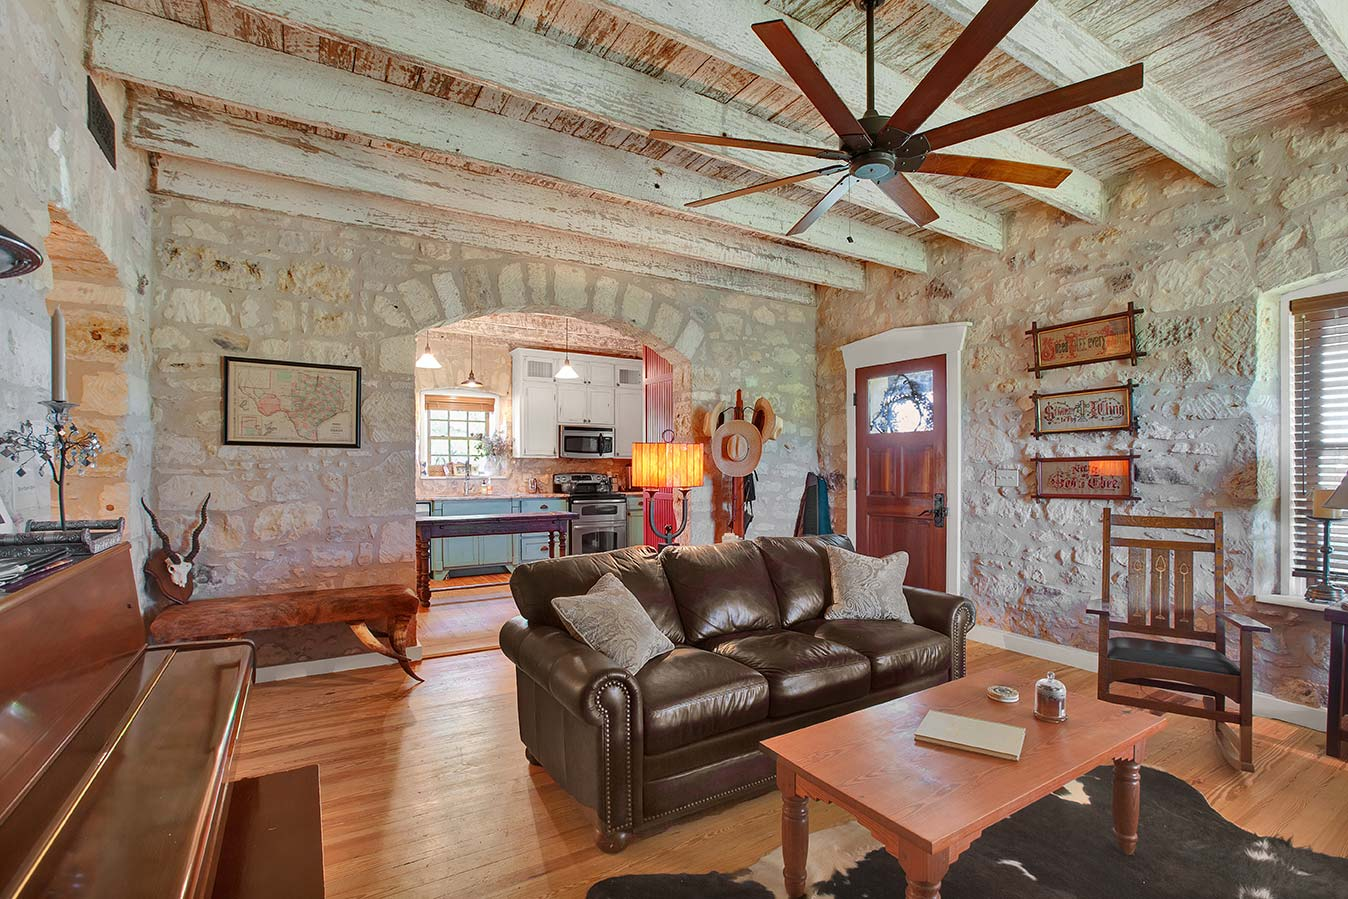 fredericksburg-realty-squaw-creek-ranch-real-estate-land-for-sale-home-house-historic-13.jpg